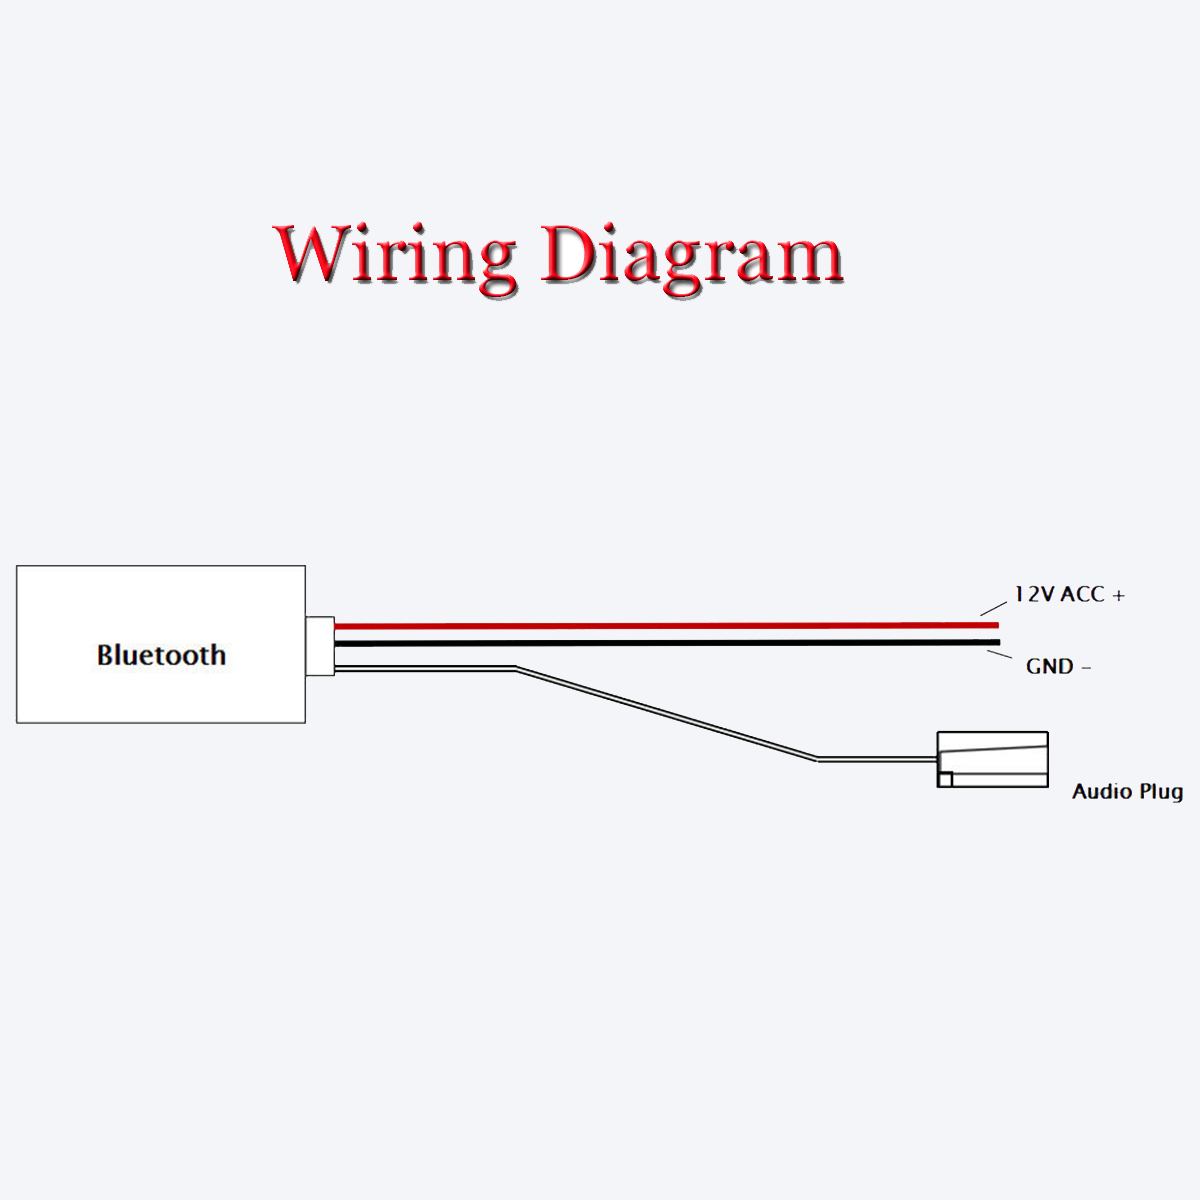 aux cable wiring diagram wiring diagram aux cable wiring diagram [ 1200 x 1200 Pixel ]